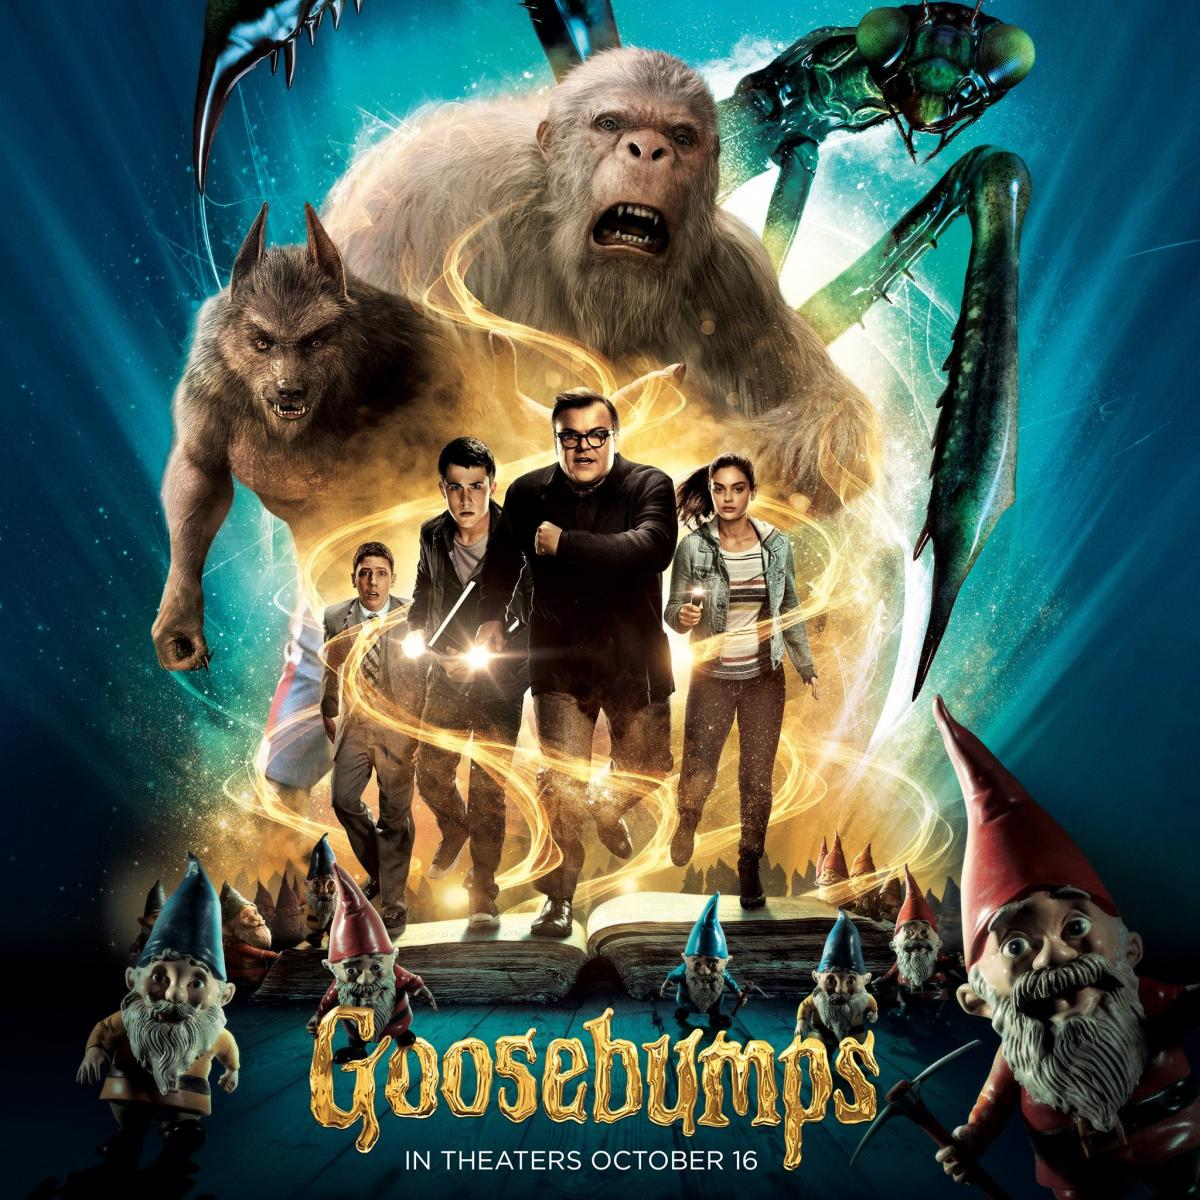 Goosebumps 2015 Movie 16 Monsters From The R L Stine Books We D Like To See In The Film